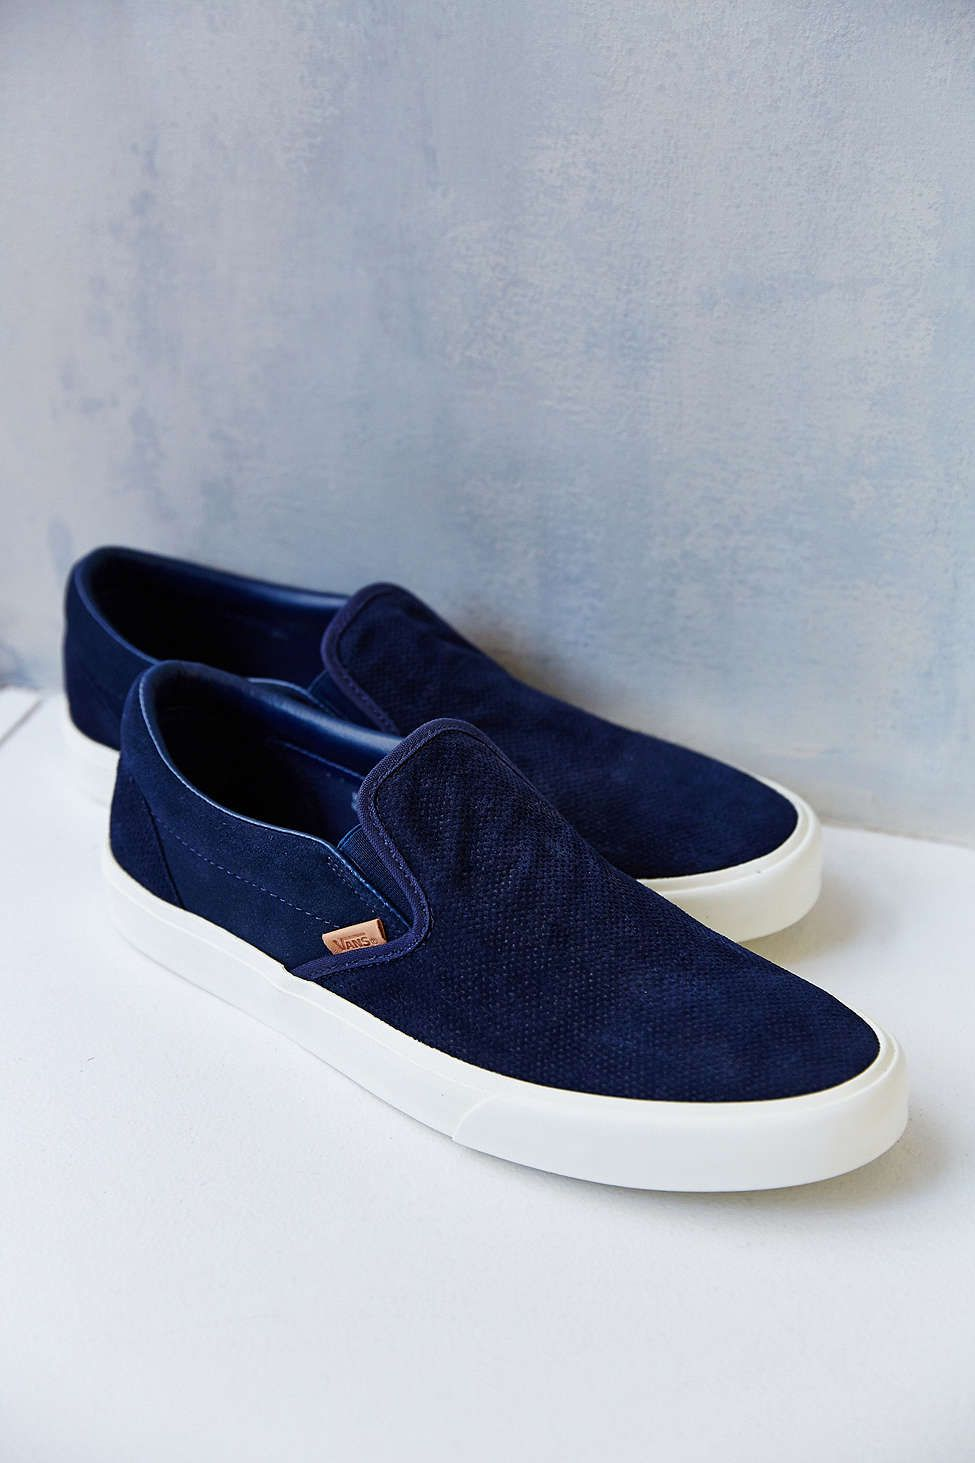 Vans Classic California Knit Suede Slip On Men's Sneaker